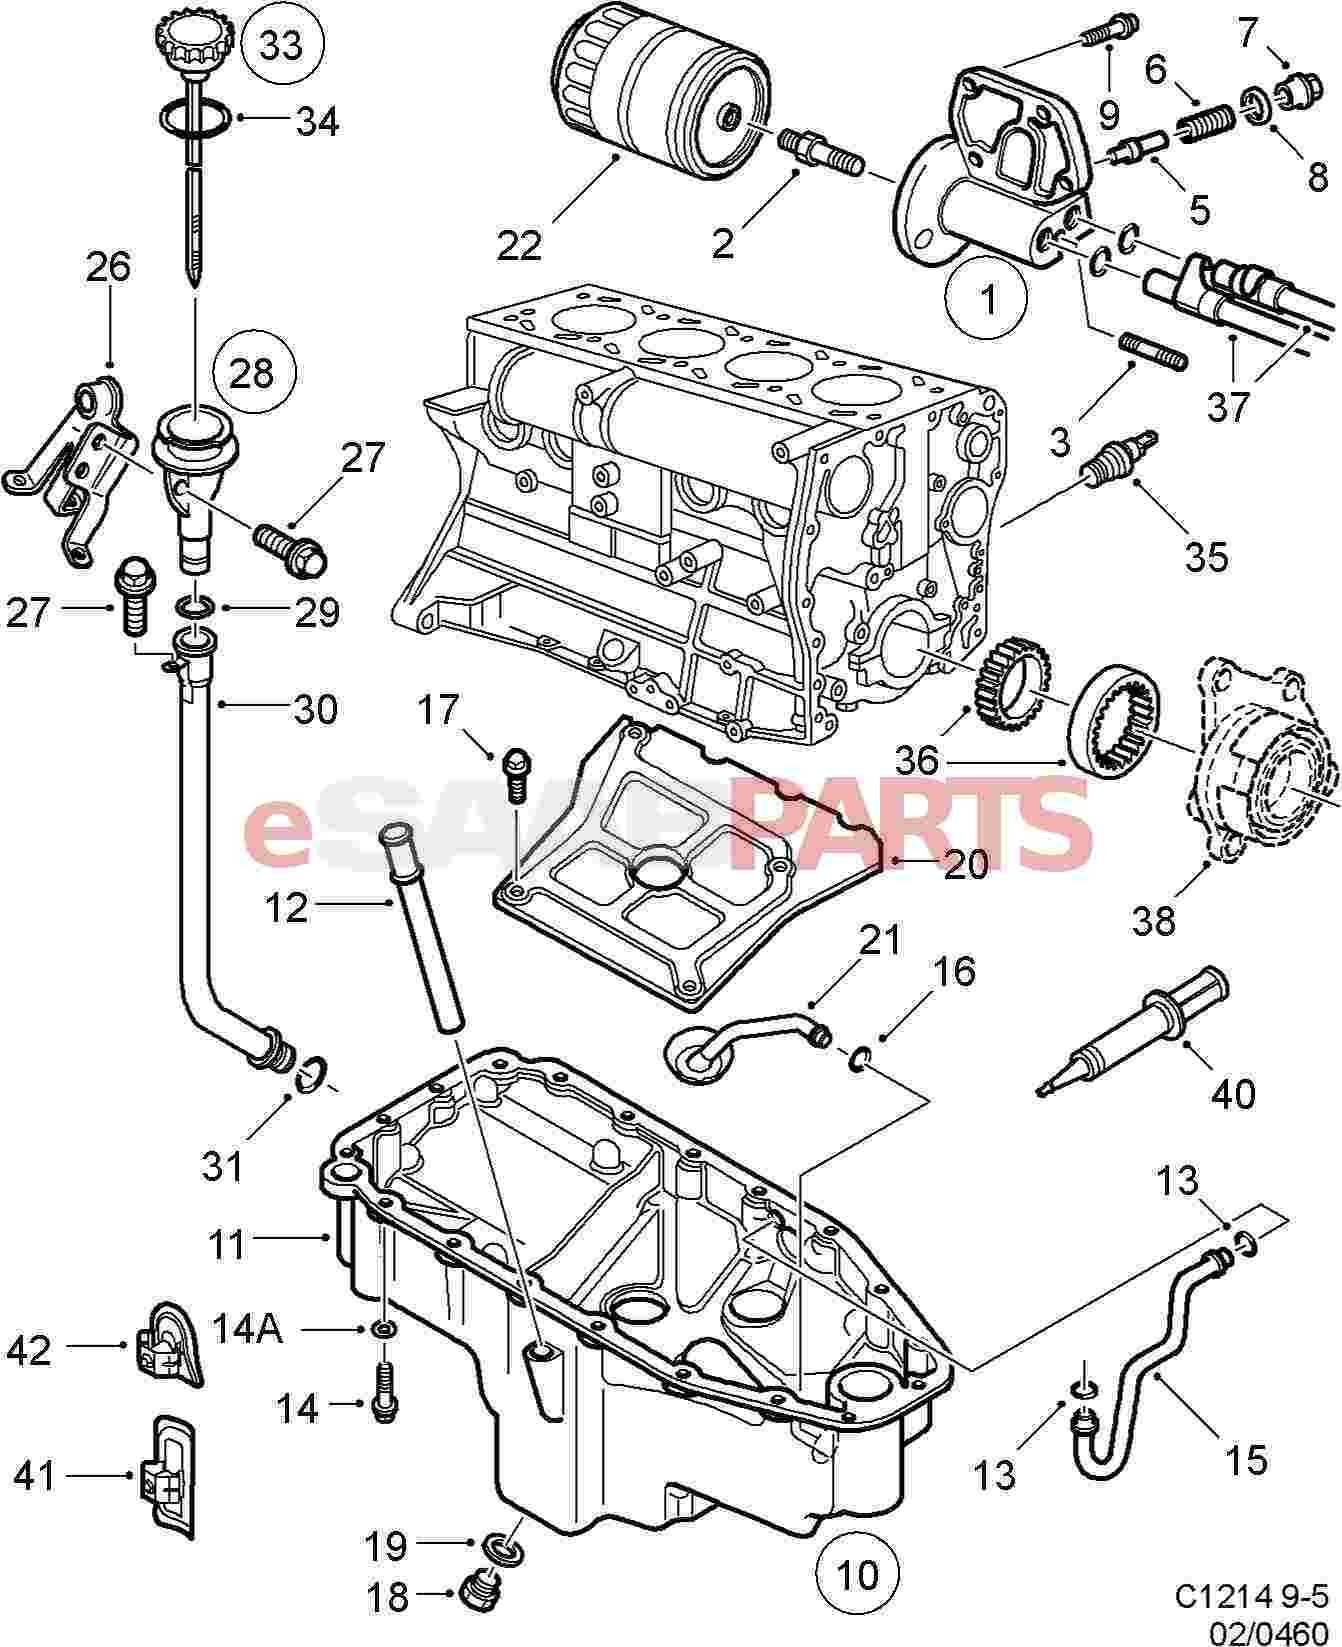 saab 9 5 engine diagram 2 2   saab flange sealant genuine